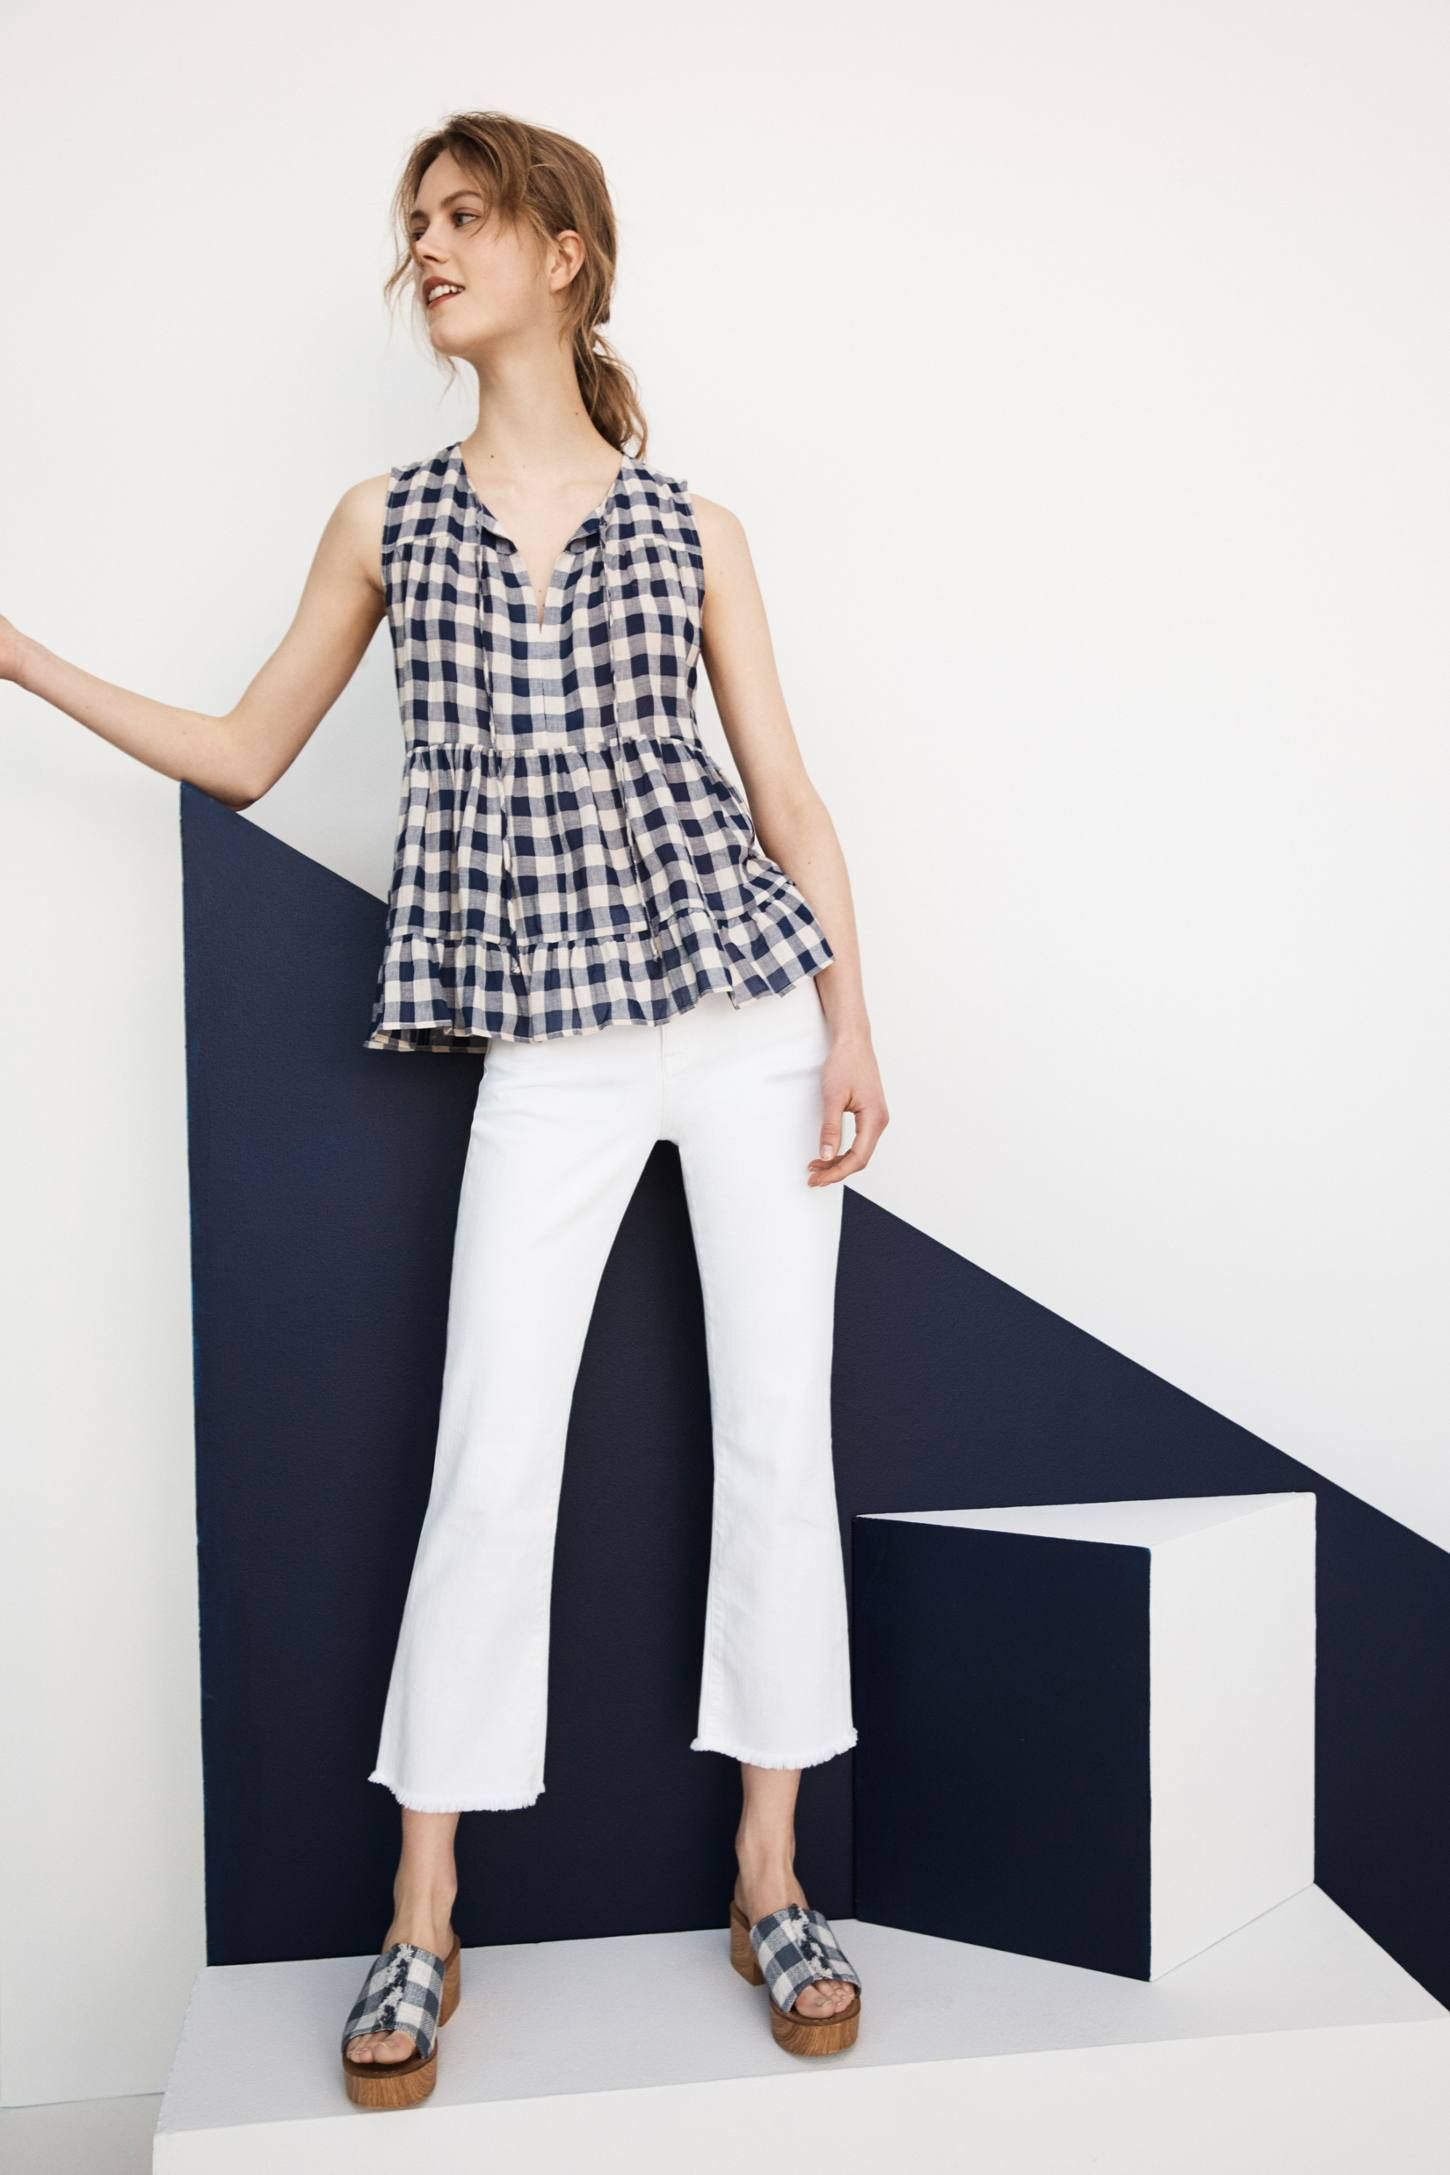 9d3cf62de3592 Slide View: 6: Skirted Top Gingham, Anthropologie, Capri Pants, Fashion  Photography